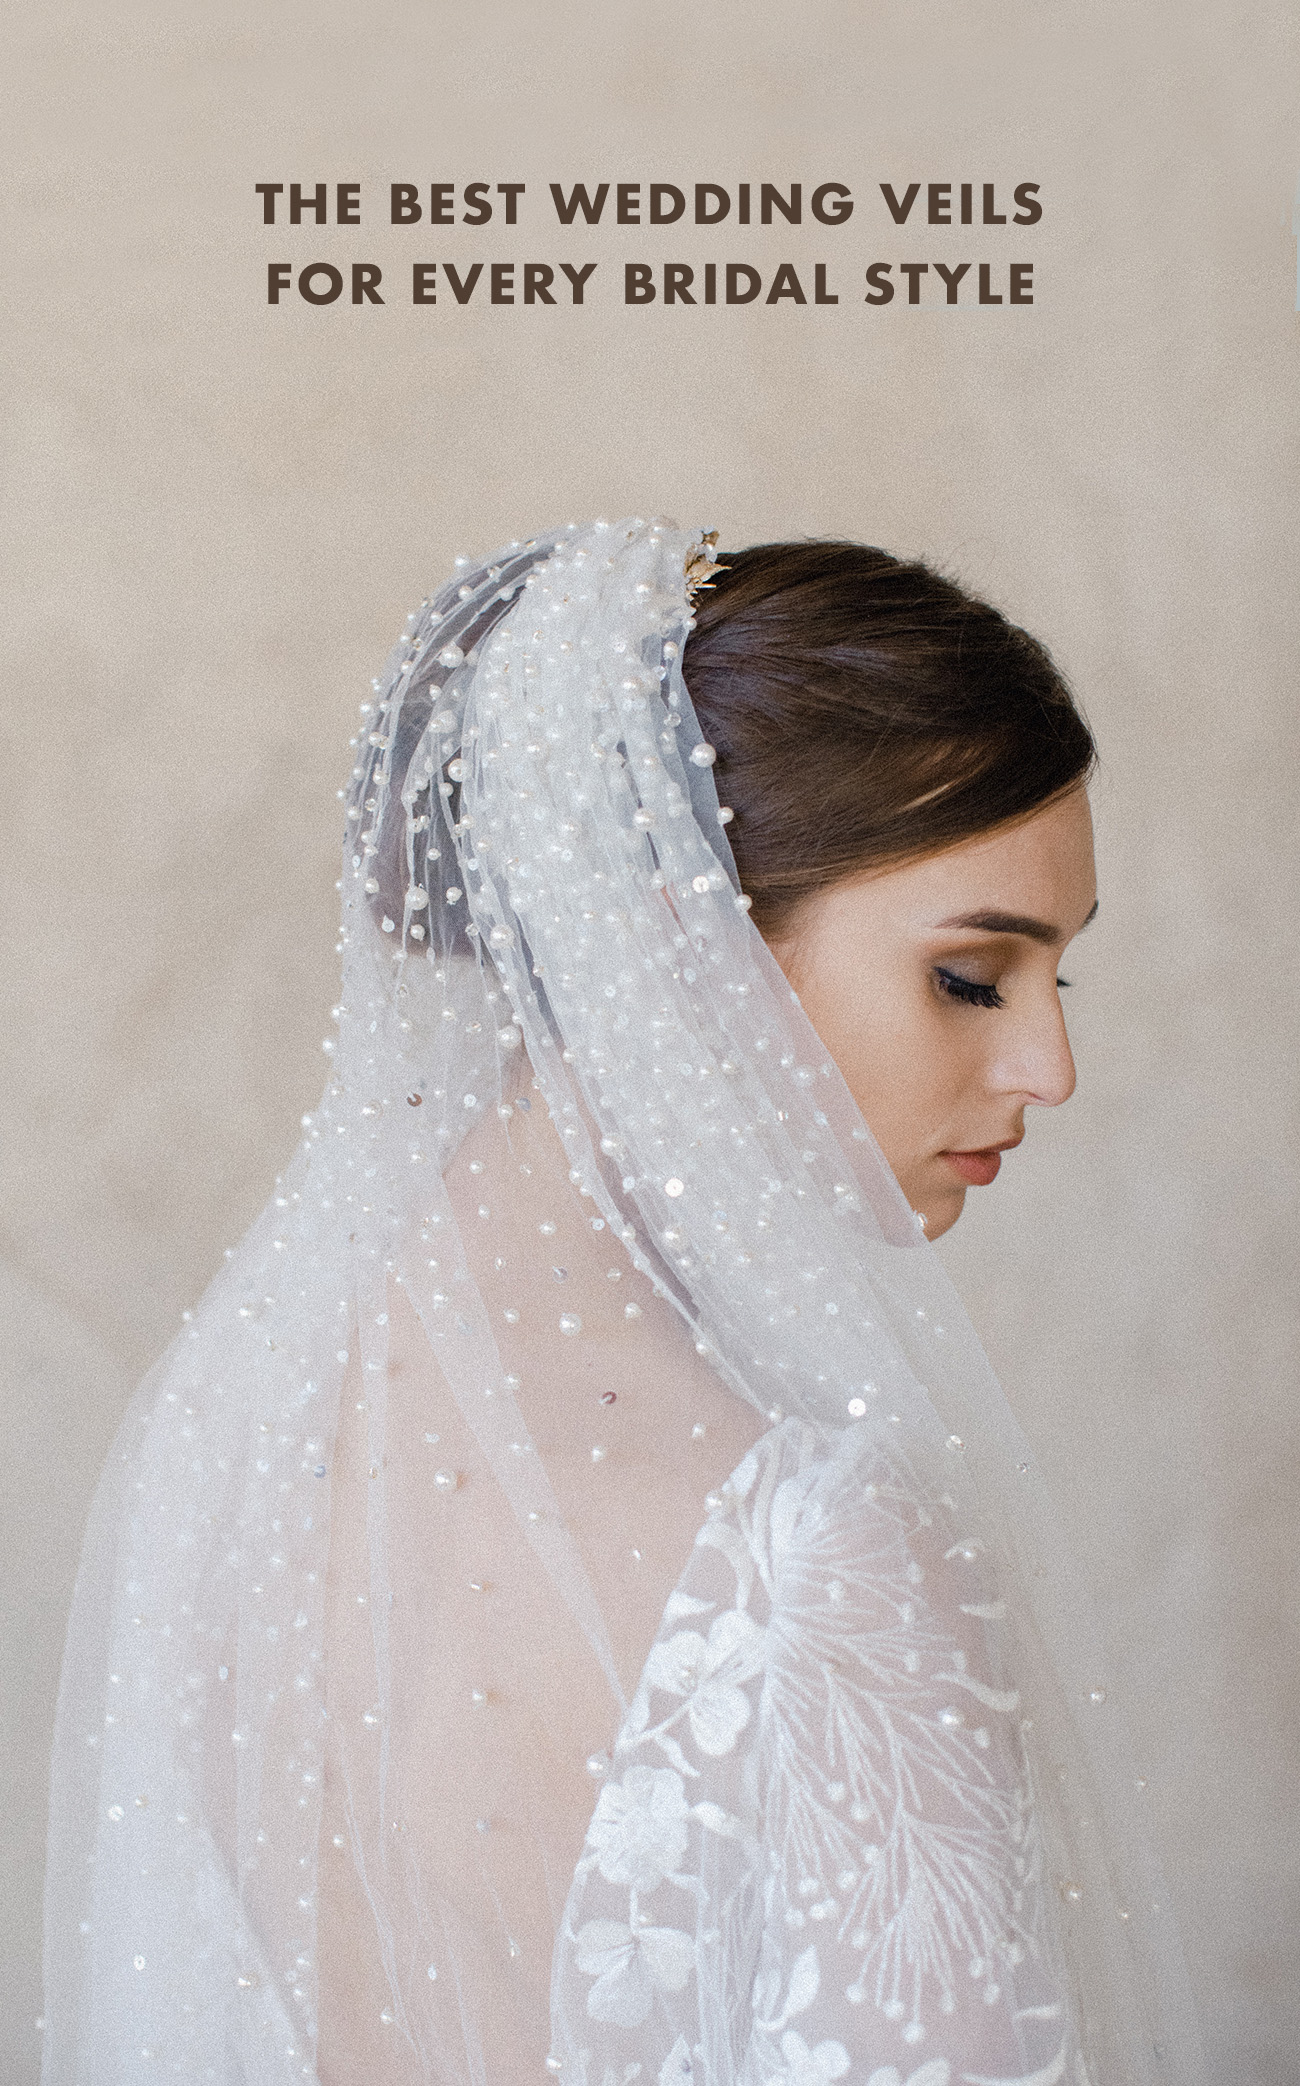 Best Wedding Veils for Every Style